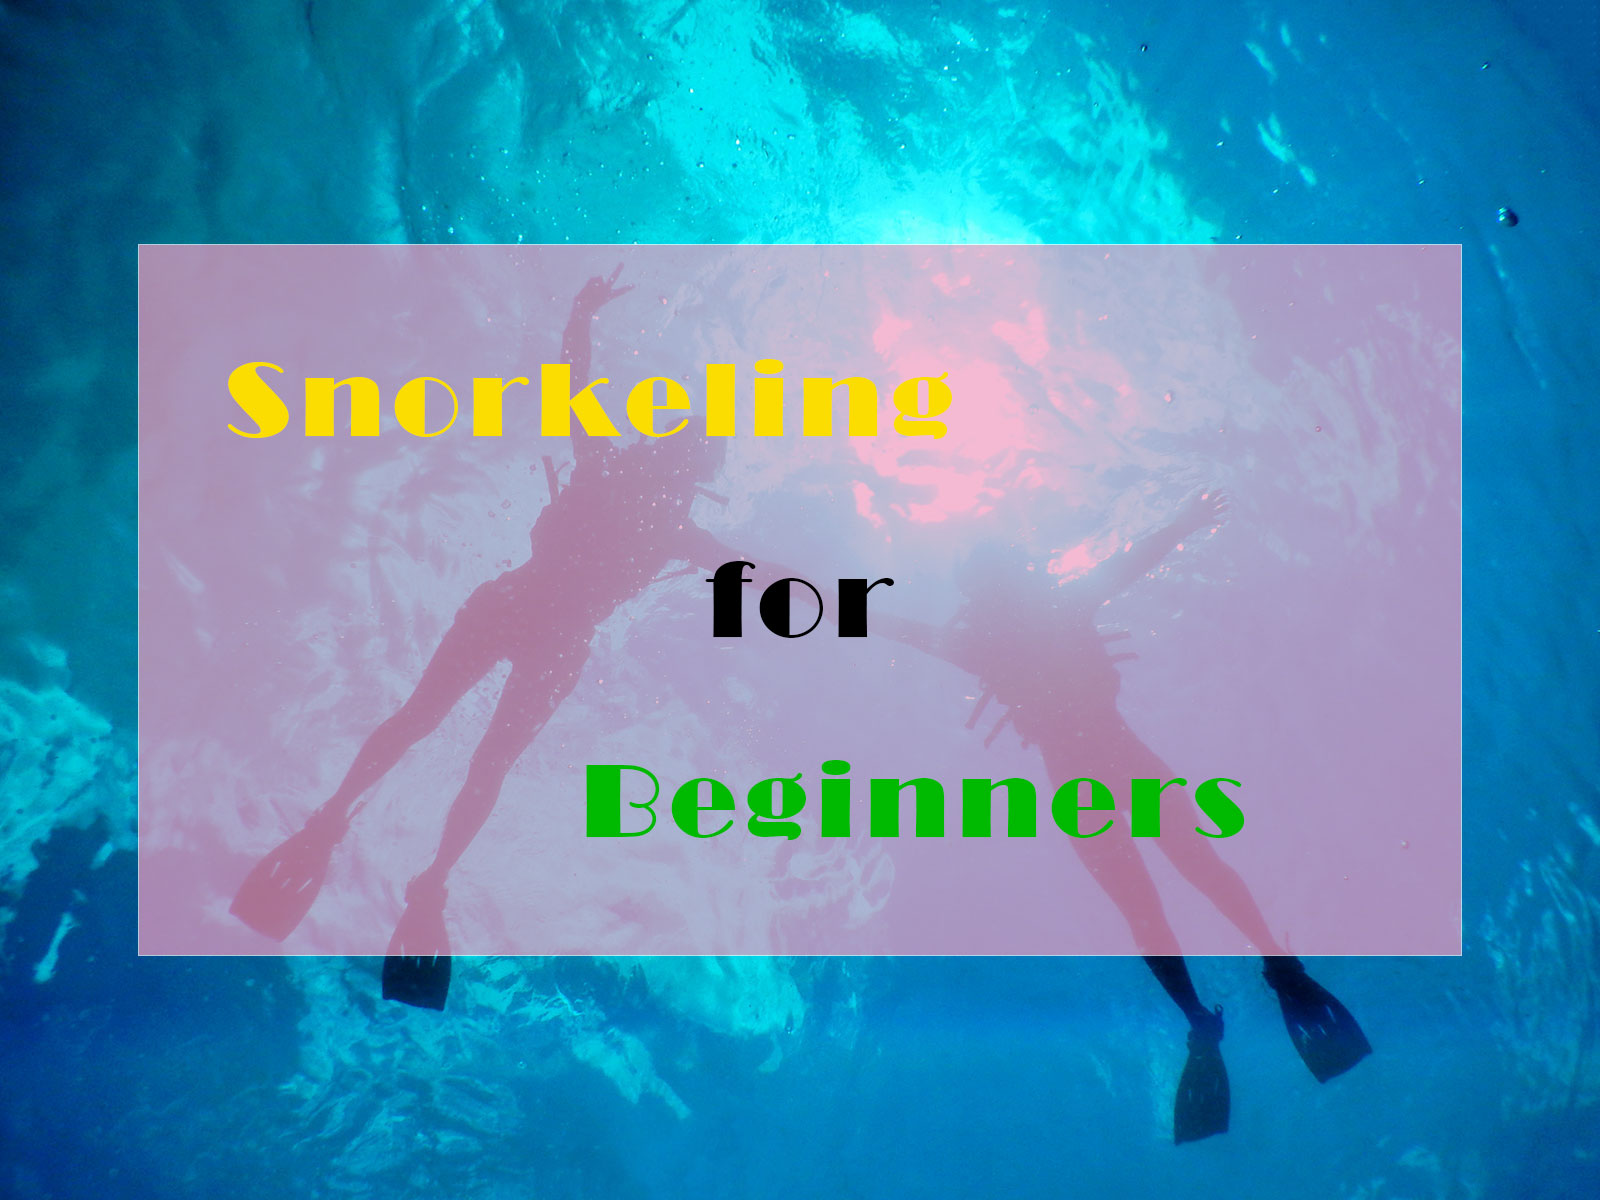 beginners-for-snorkeling